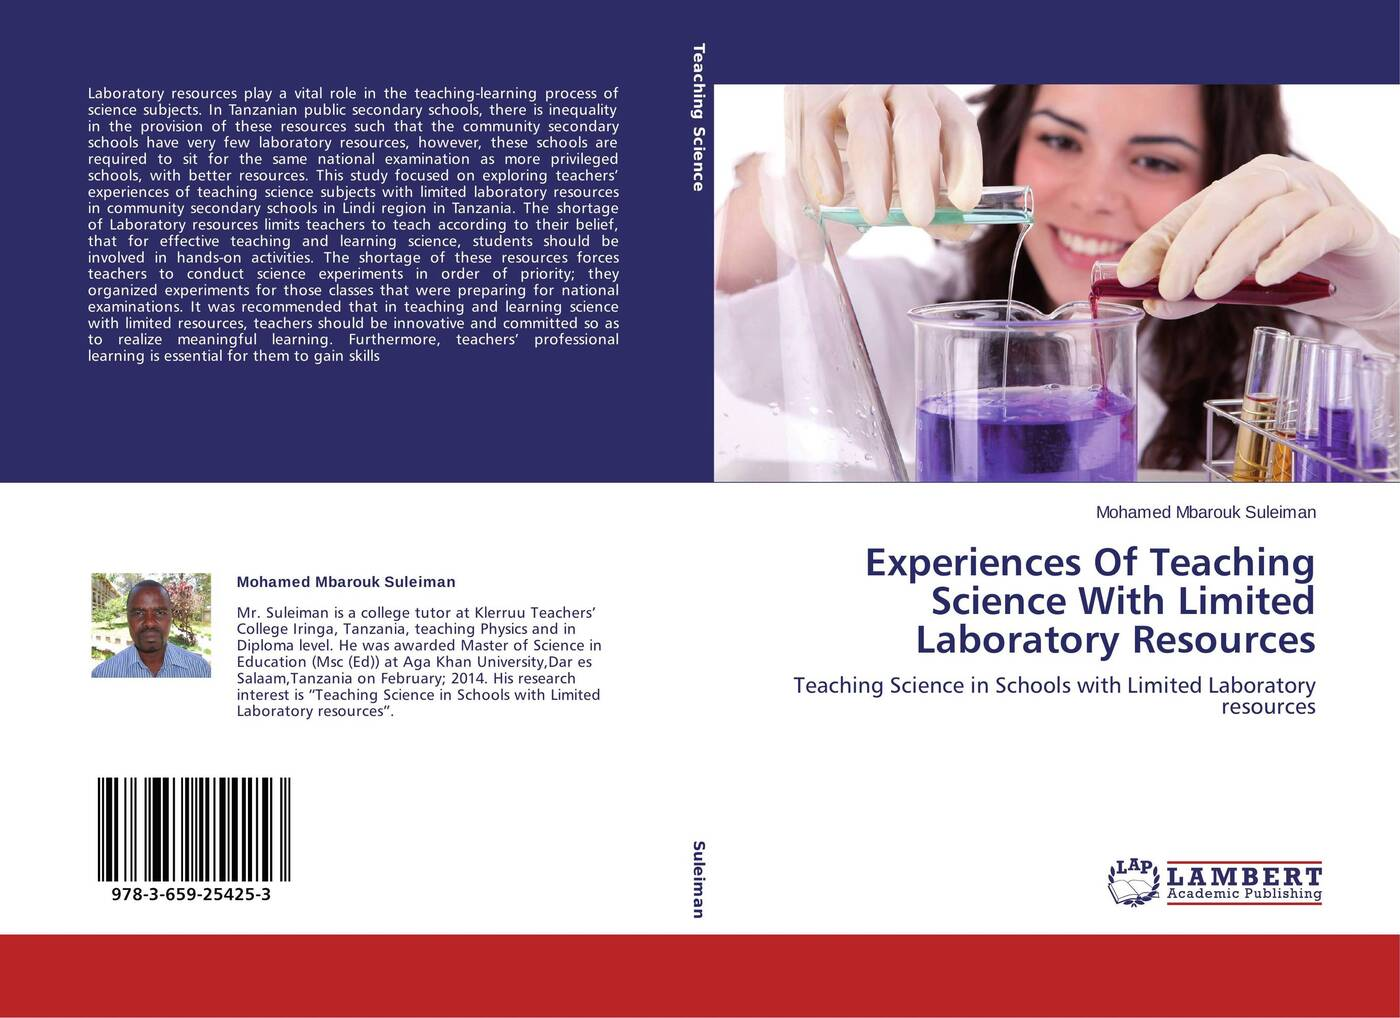 Mohamed Mbarouk Suleiman Experiences Of Teaching Science With Limited Laboratory Resources mohamed mbarouk suleiman teachers experiences of teaching science with limited laboratory resources